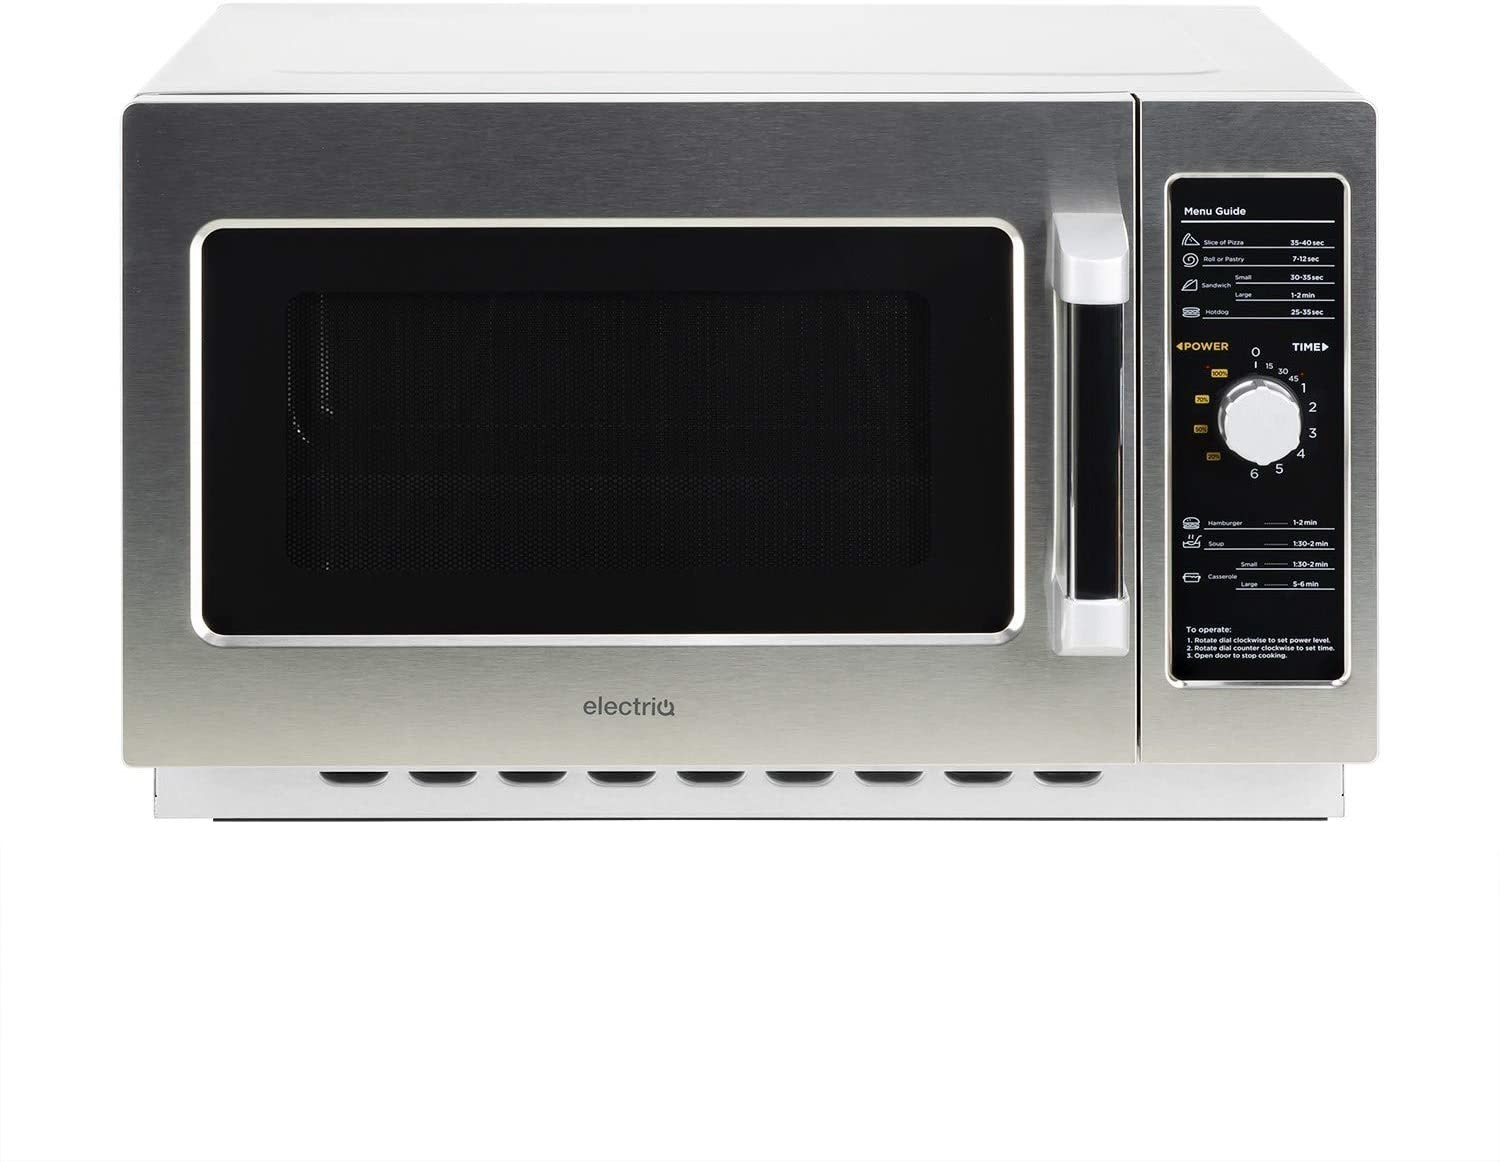 Image of ElectrIQ 34l 1200w Commerical Microwave in Stainless Steel